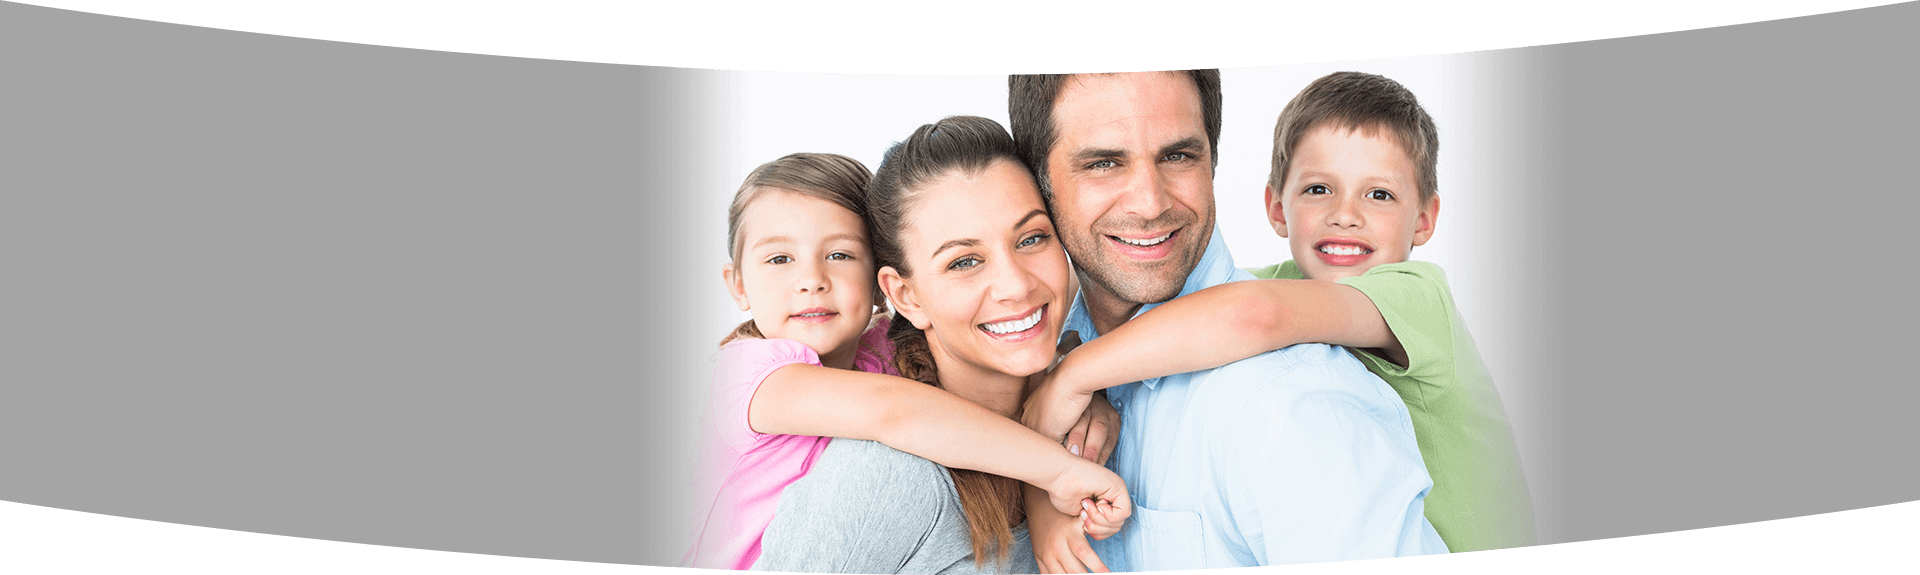 Dentist Calgary - Happy family 2